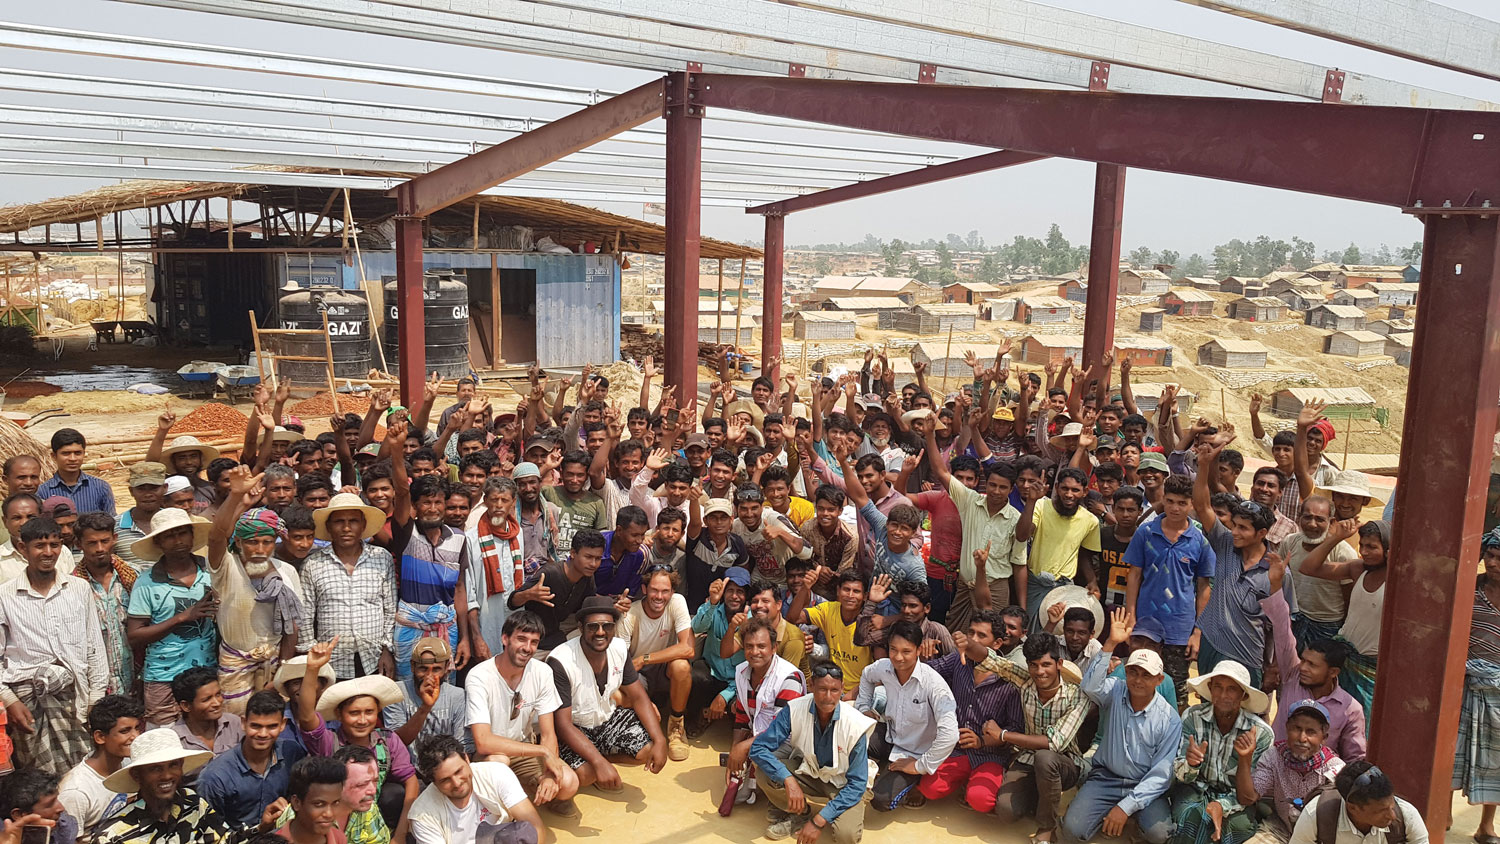 Building a hospital in the Rohingya refugee camp